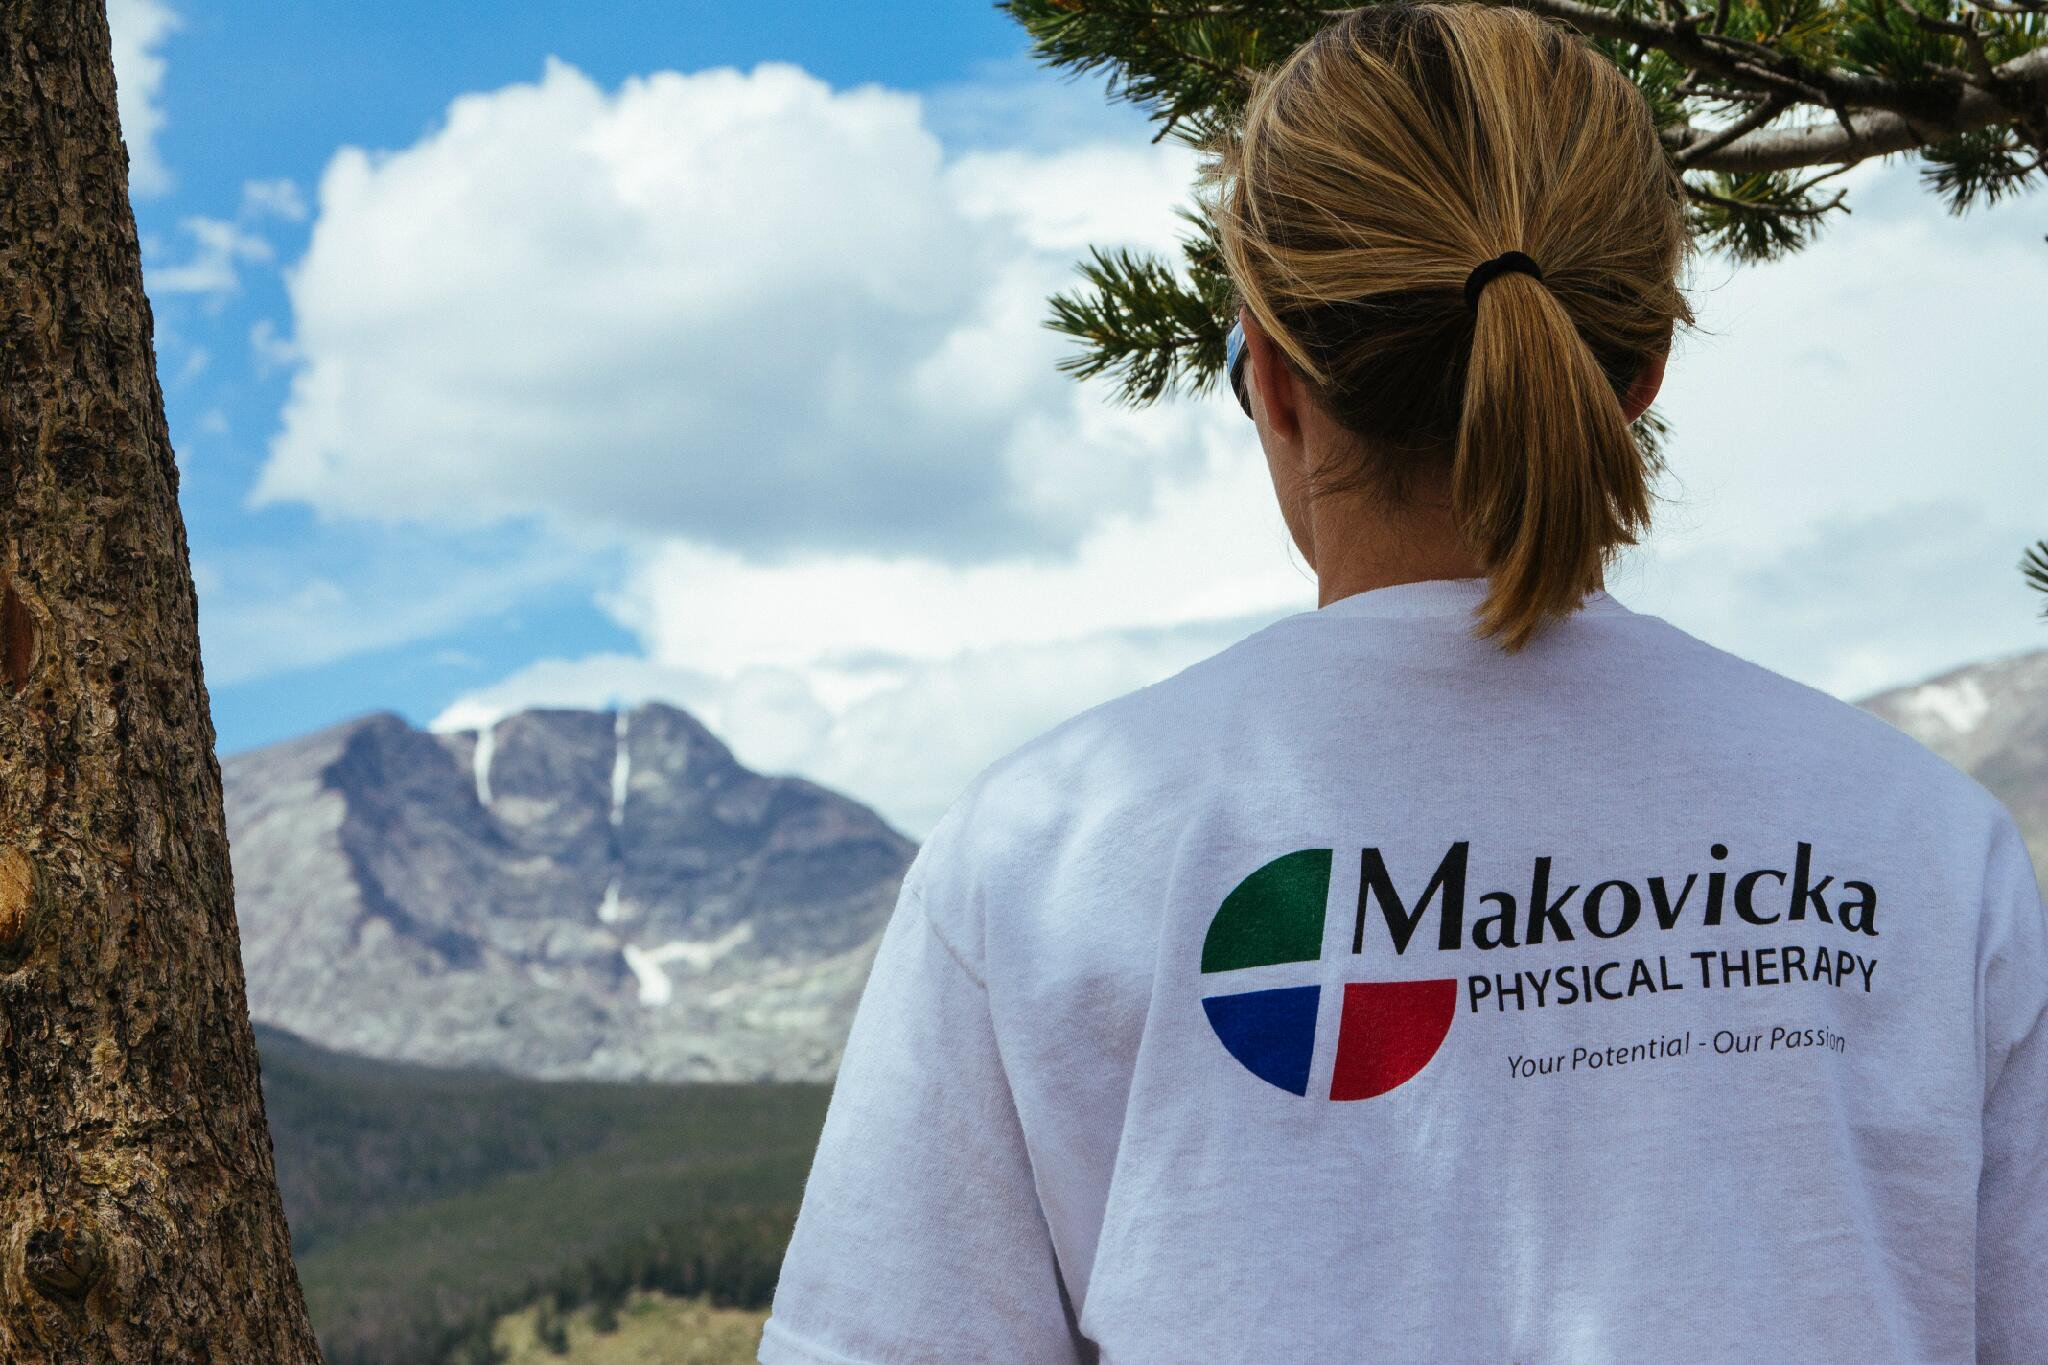 Woman at mountain overlook wearing Makovicka Physical Therapy T-Shirt